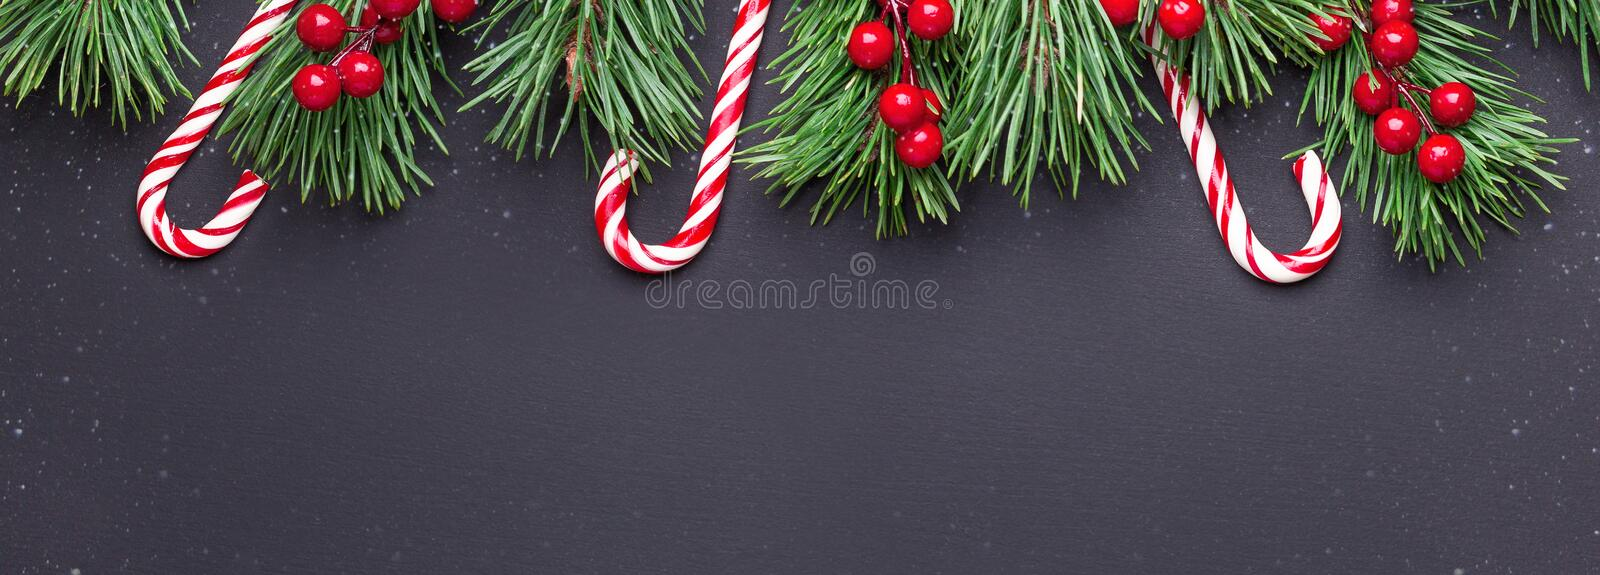 Christmas background with tree branches, candy cane and holly on black wooden background. Snowfall drawing effect stock photo